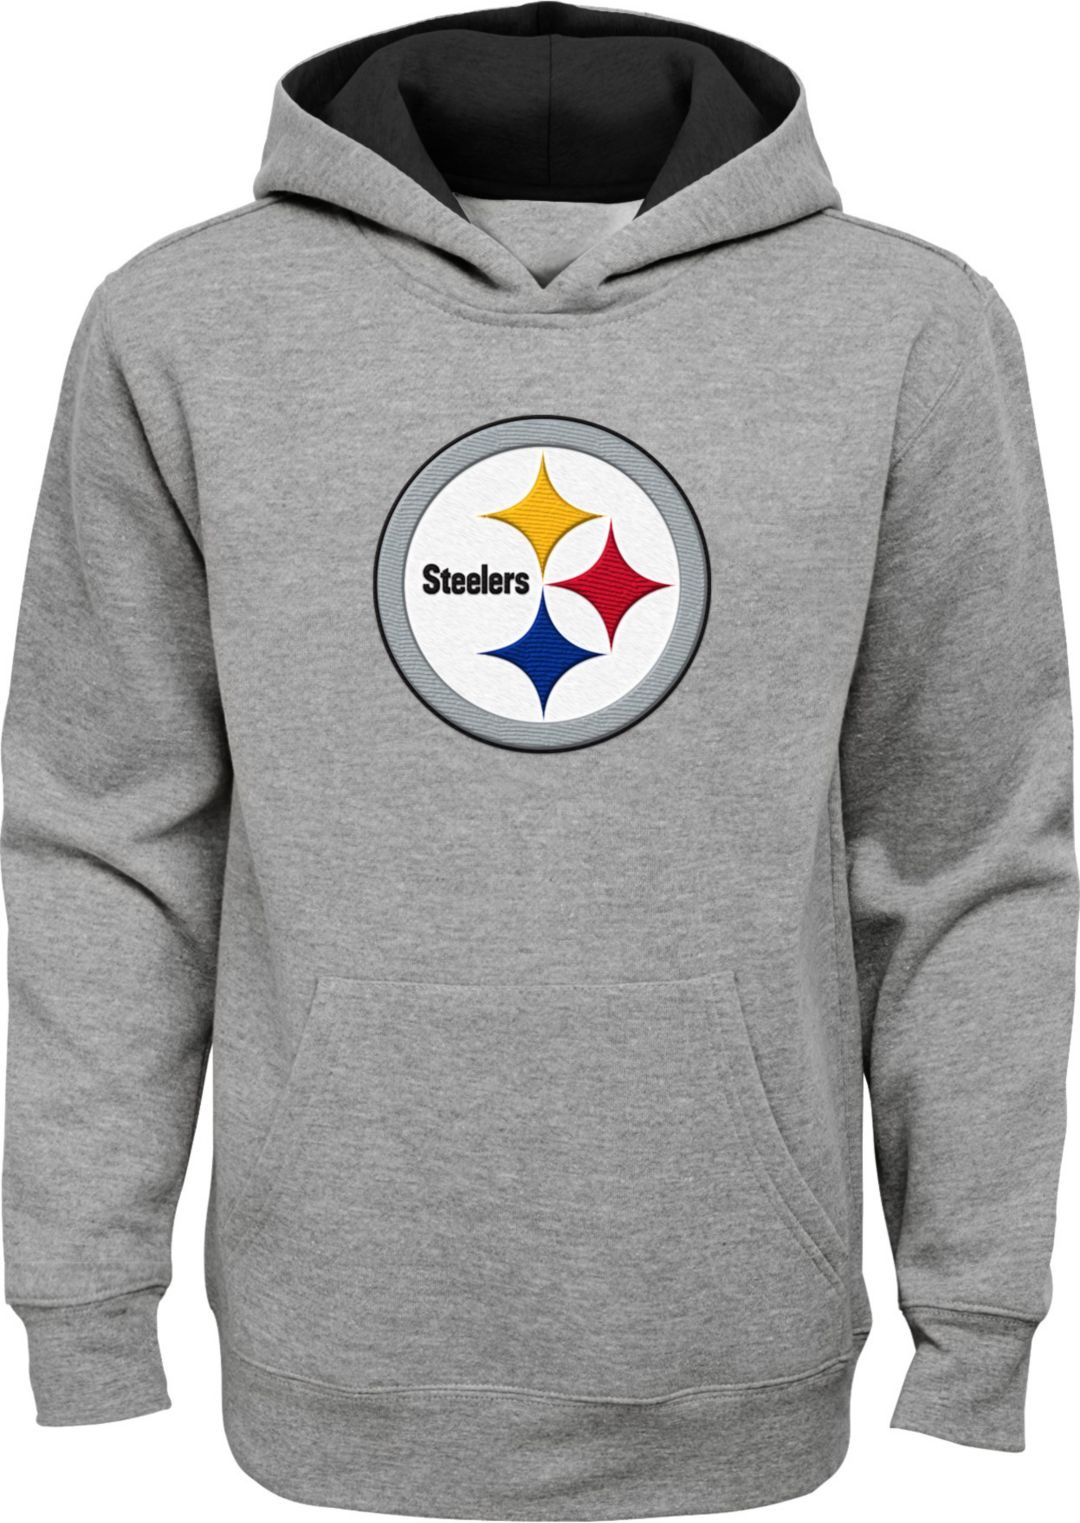 on sale 26f1c 583c4 NFL Team Apparel Youth Pittsburgh Steelers Prime Grey Pullover Hoodie